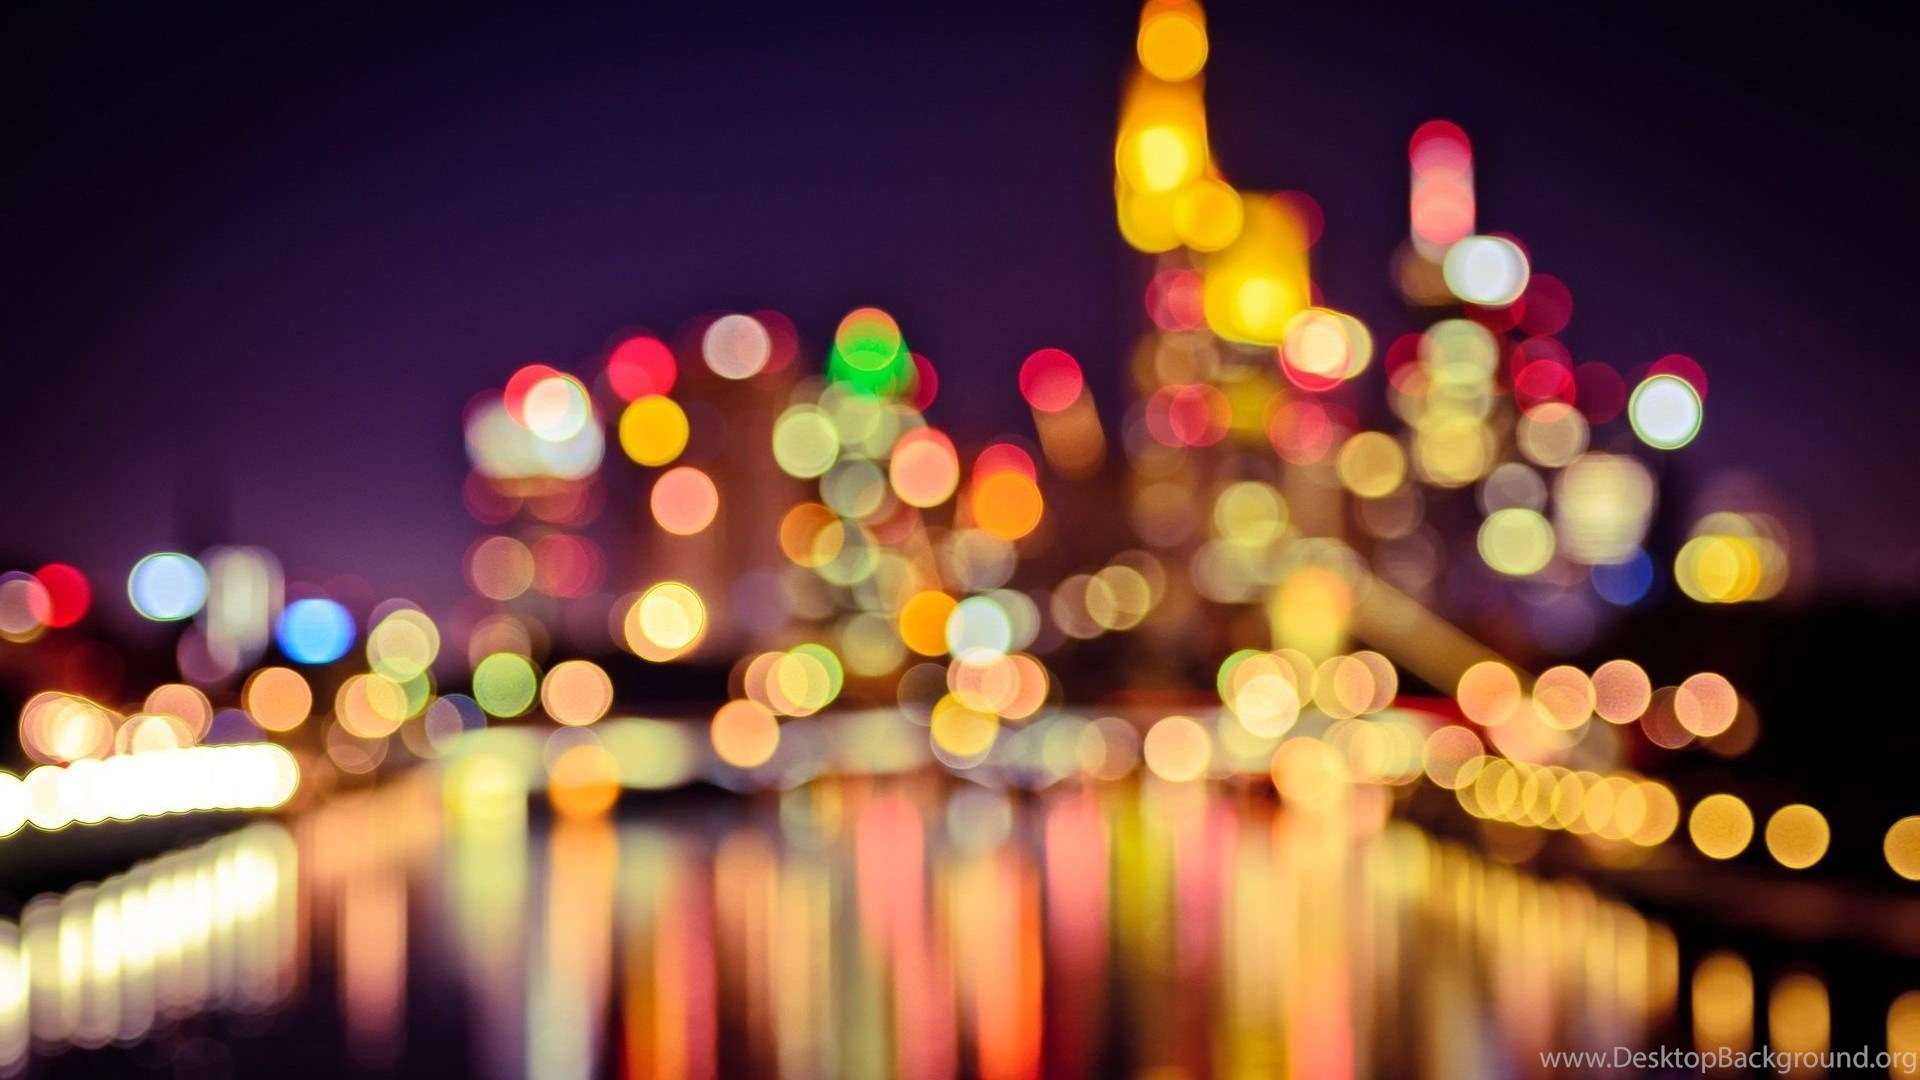 25 Colorful Hd Wallpapers To Light Up Your Display: Macro, City Night, Bokeh Lights, Photo, Colors, Close Up